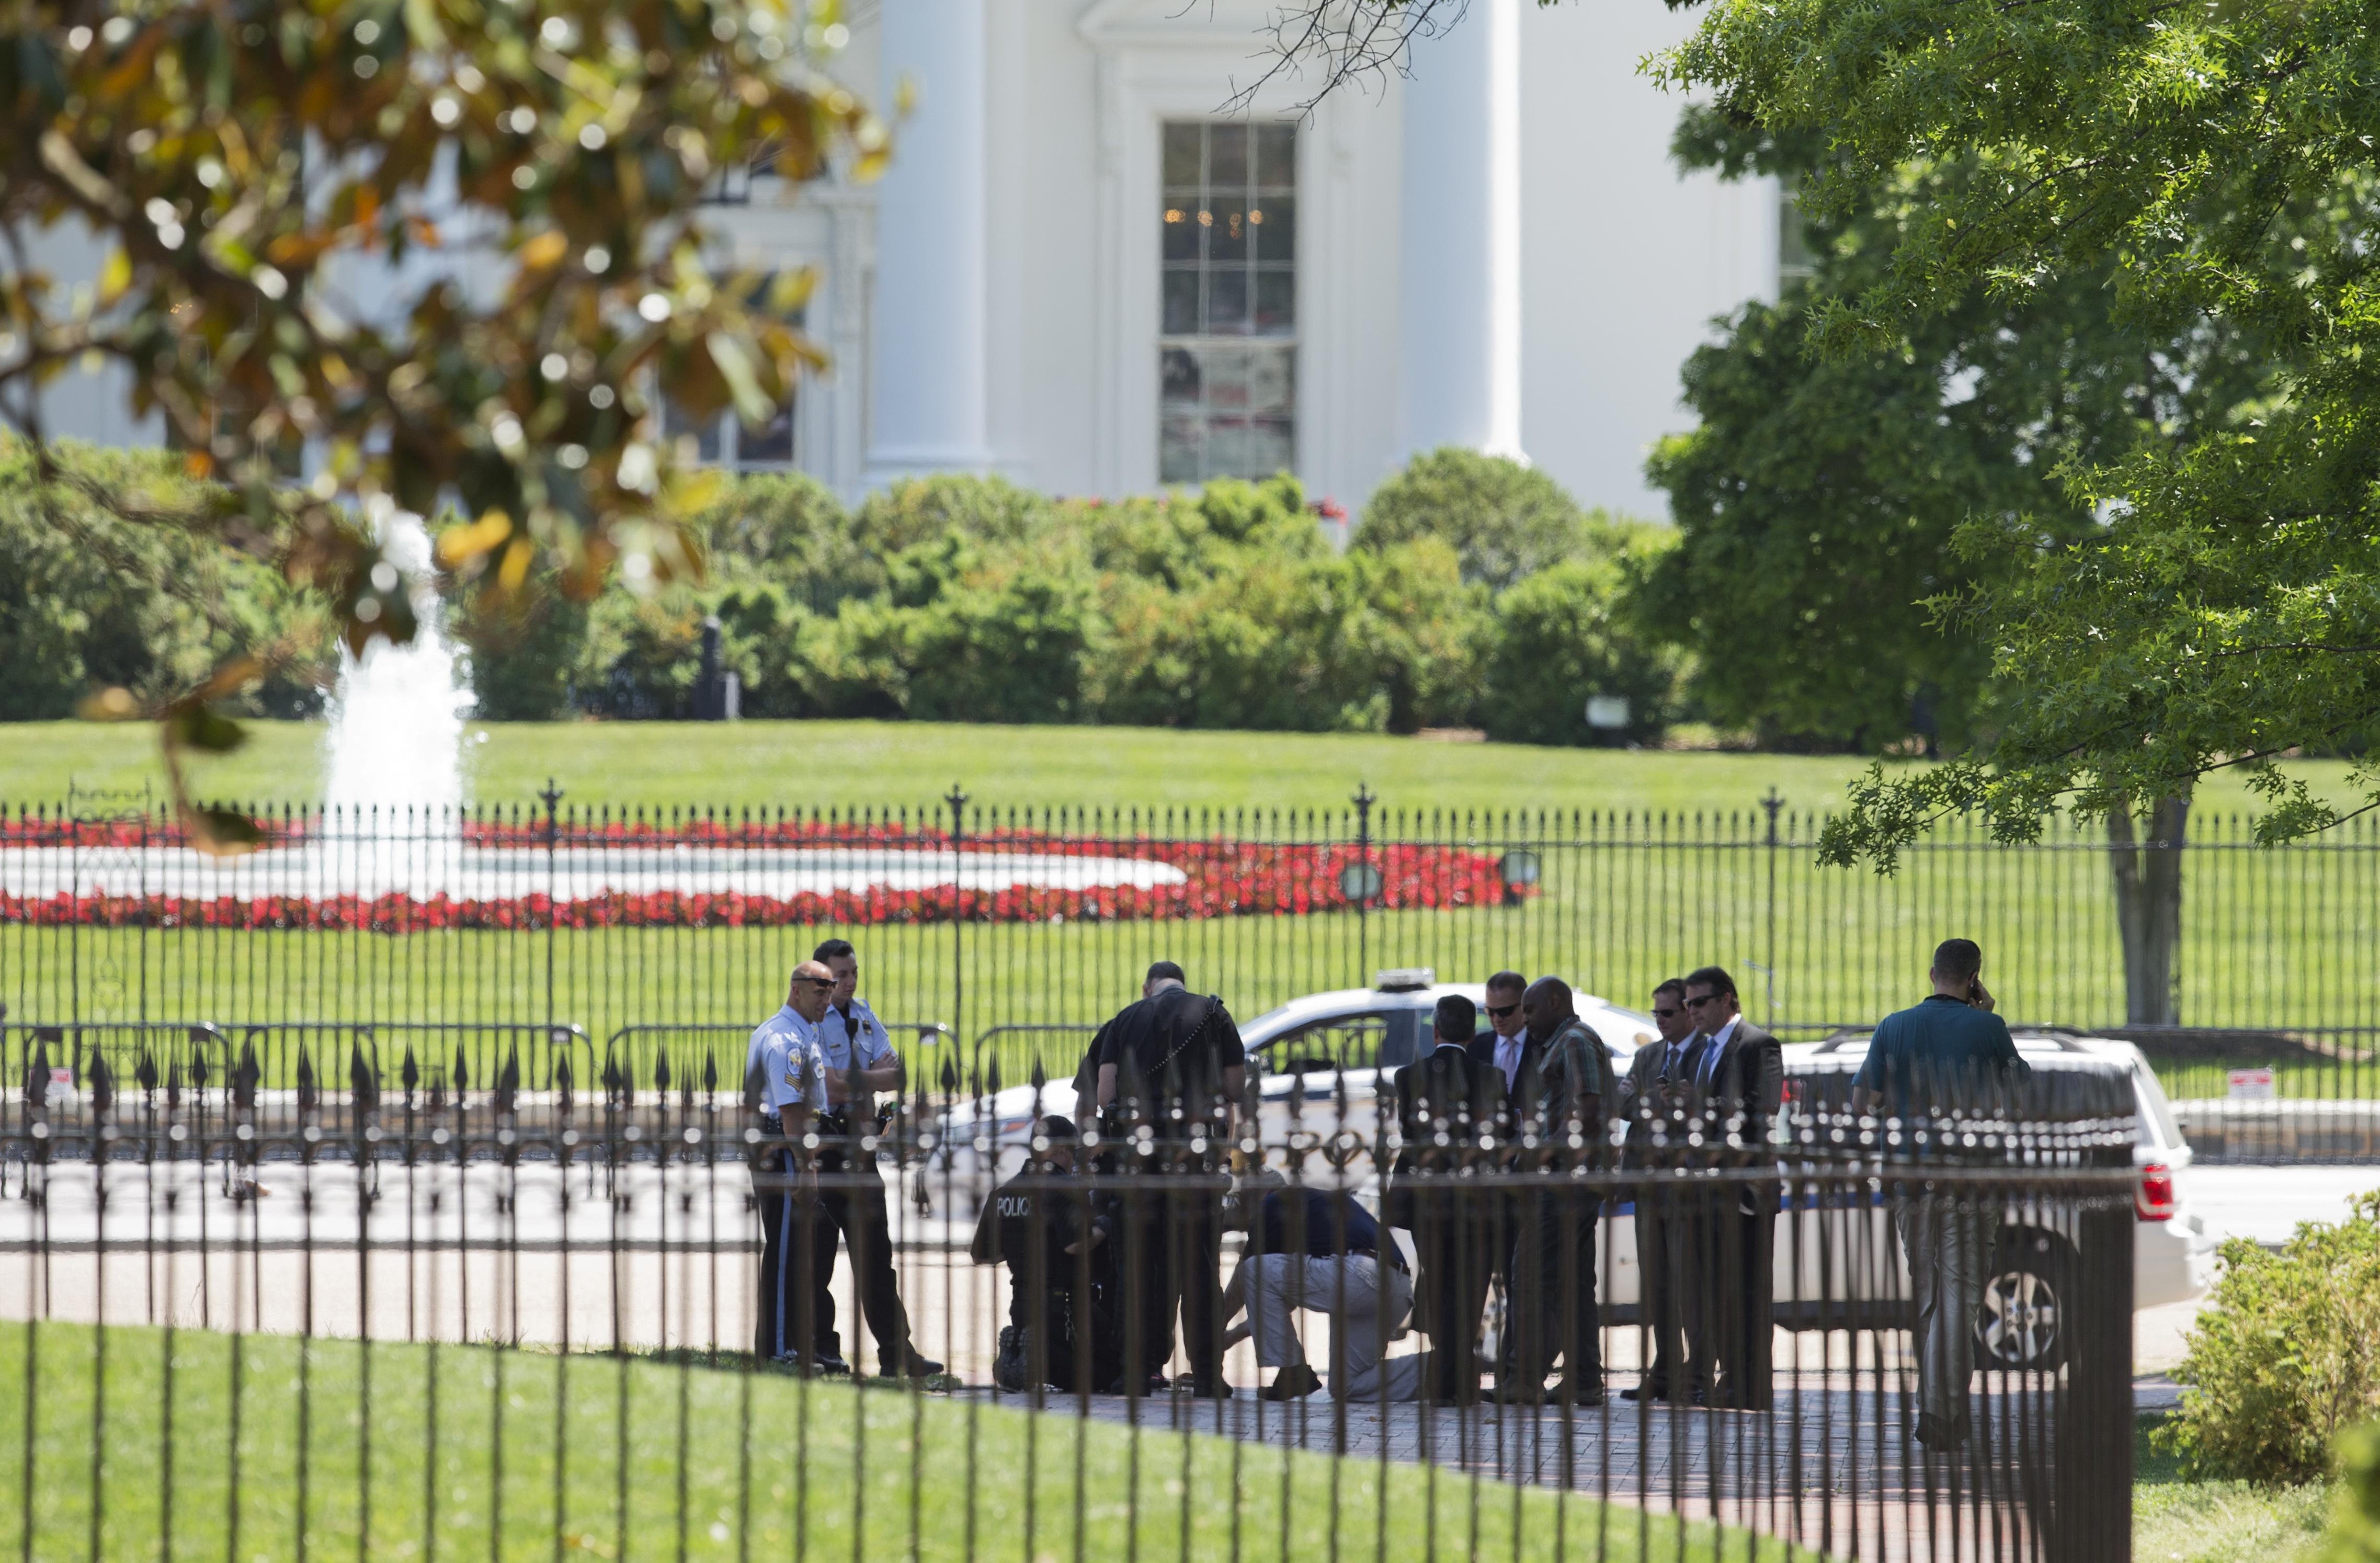 Preparation begins for White House fence improvements